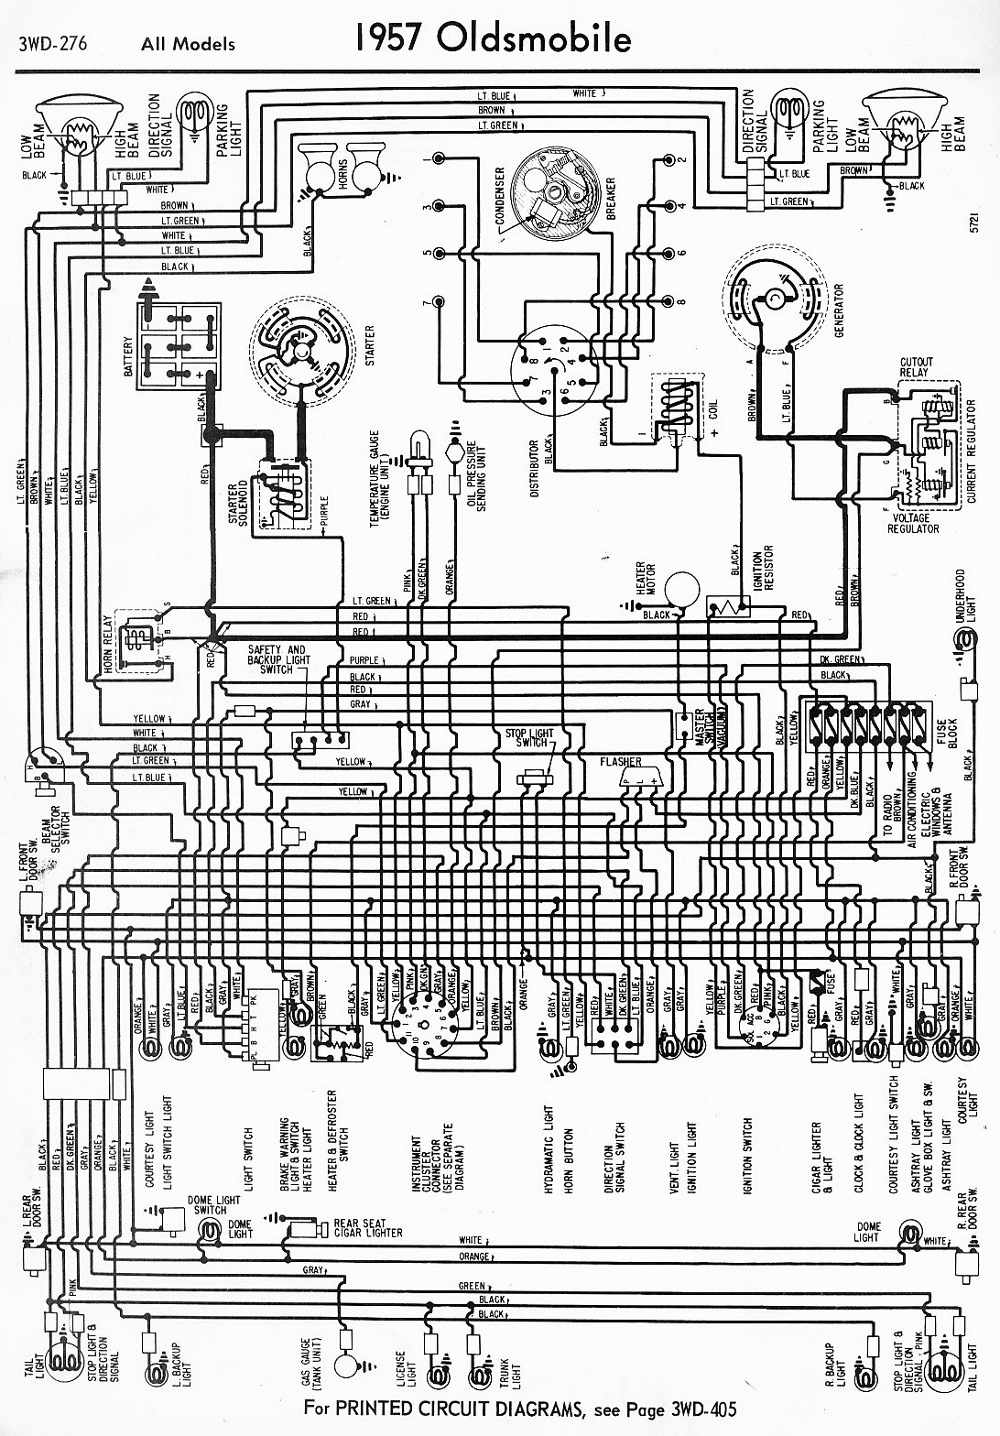 Wiring Diagrams 911 December 2011 Starting Circuit Diagram For The 1955 Mercury All Models Of 1957 Oldsmobile